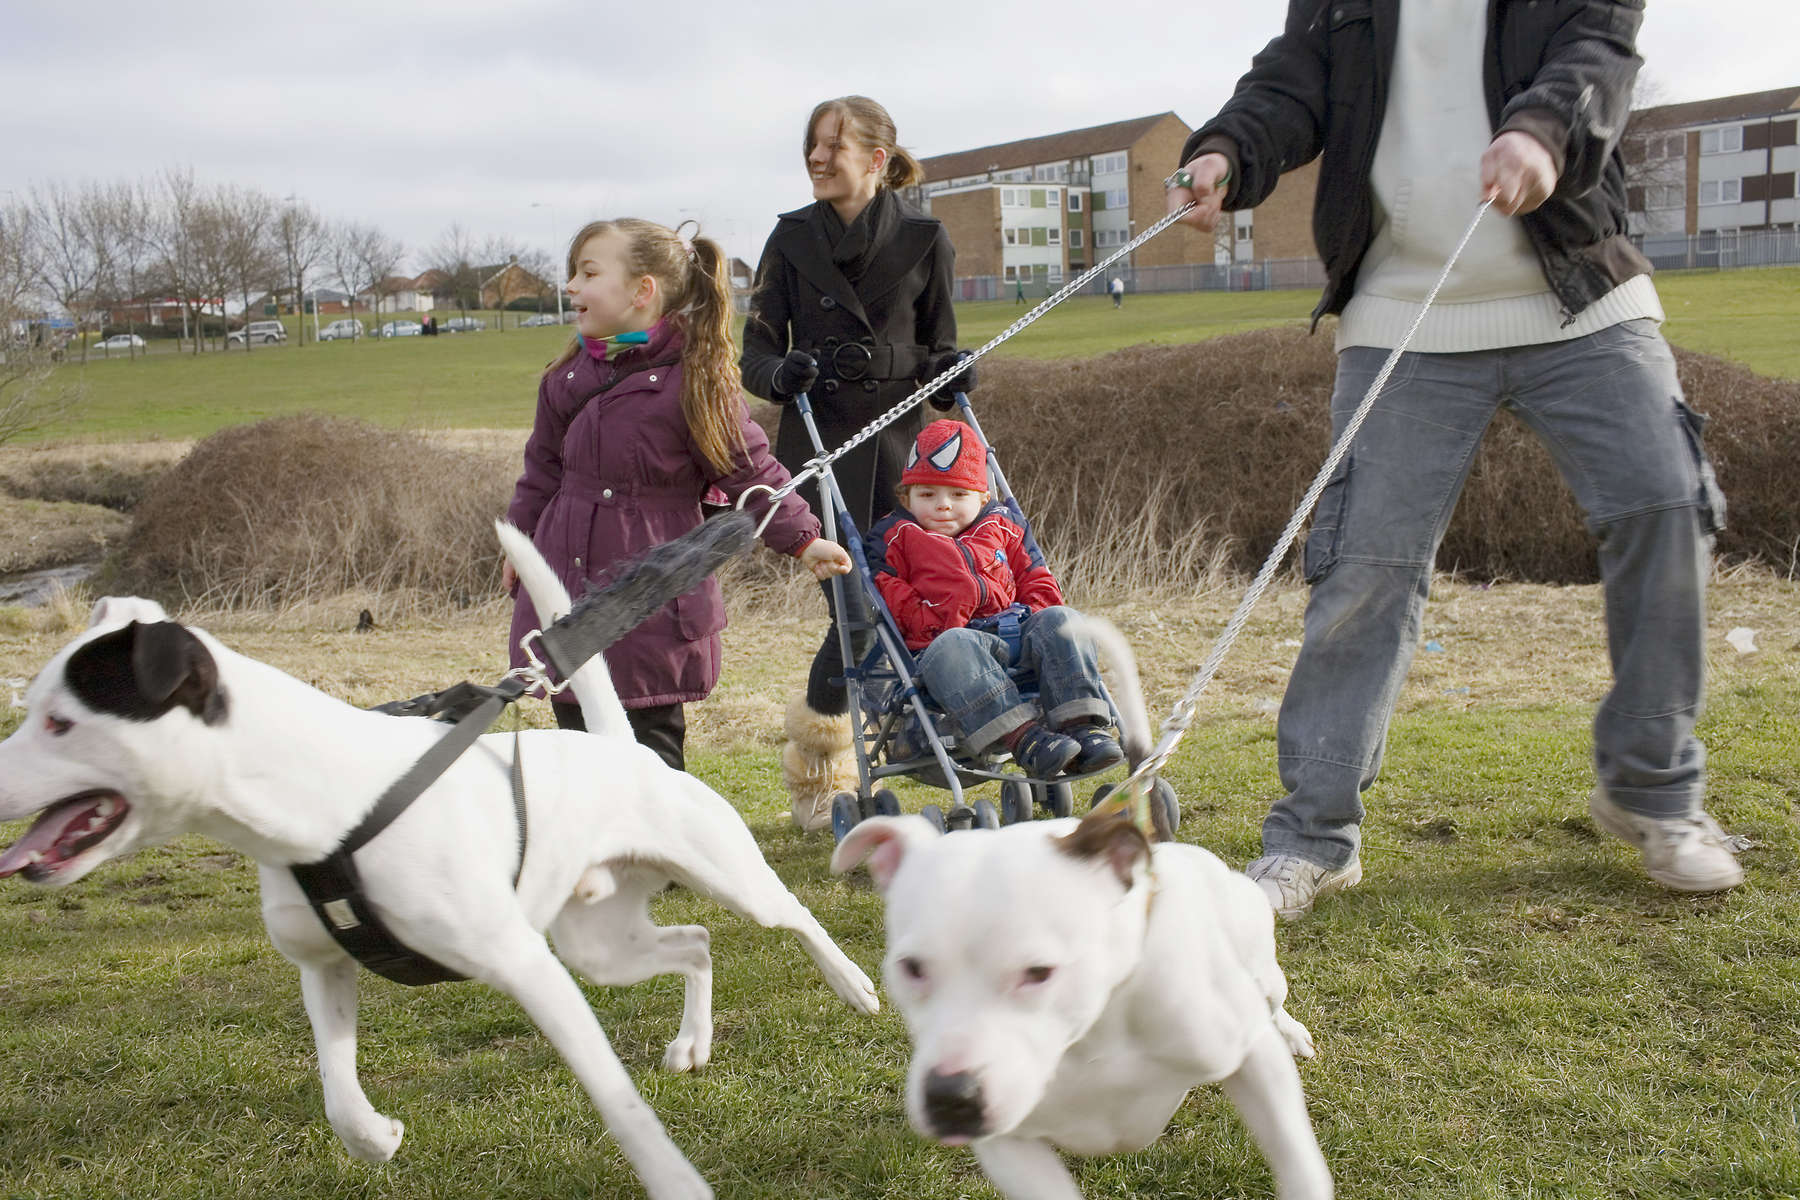 From left - 5 year old Ellie, Tina Connelly, Kayne 3, and Darren Bernard with dogs Ronnie and Boycie on park land in front of the crumbling Leys Estate in Dagenham.Dagenham is a large suburb in east London, England forming part of the borough of Barking & Dagenham 12 miles from Charing Cross. In 1931 the Ford Motor Company relocated to Dagenham. At its peak the plant had 4 million square feet of floor space employing 40,000. On February 20, 2002 full production was discontinued and the work force has shrunk to around 2500 causing economic decline to Dagenham and the surrounding area.